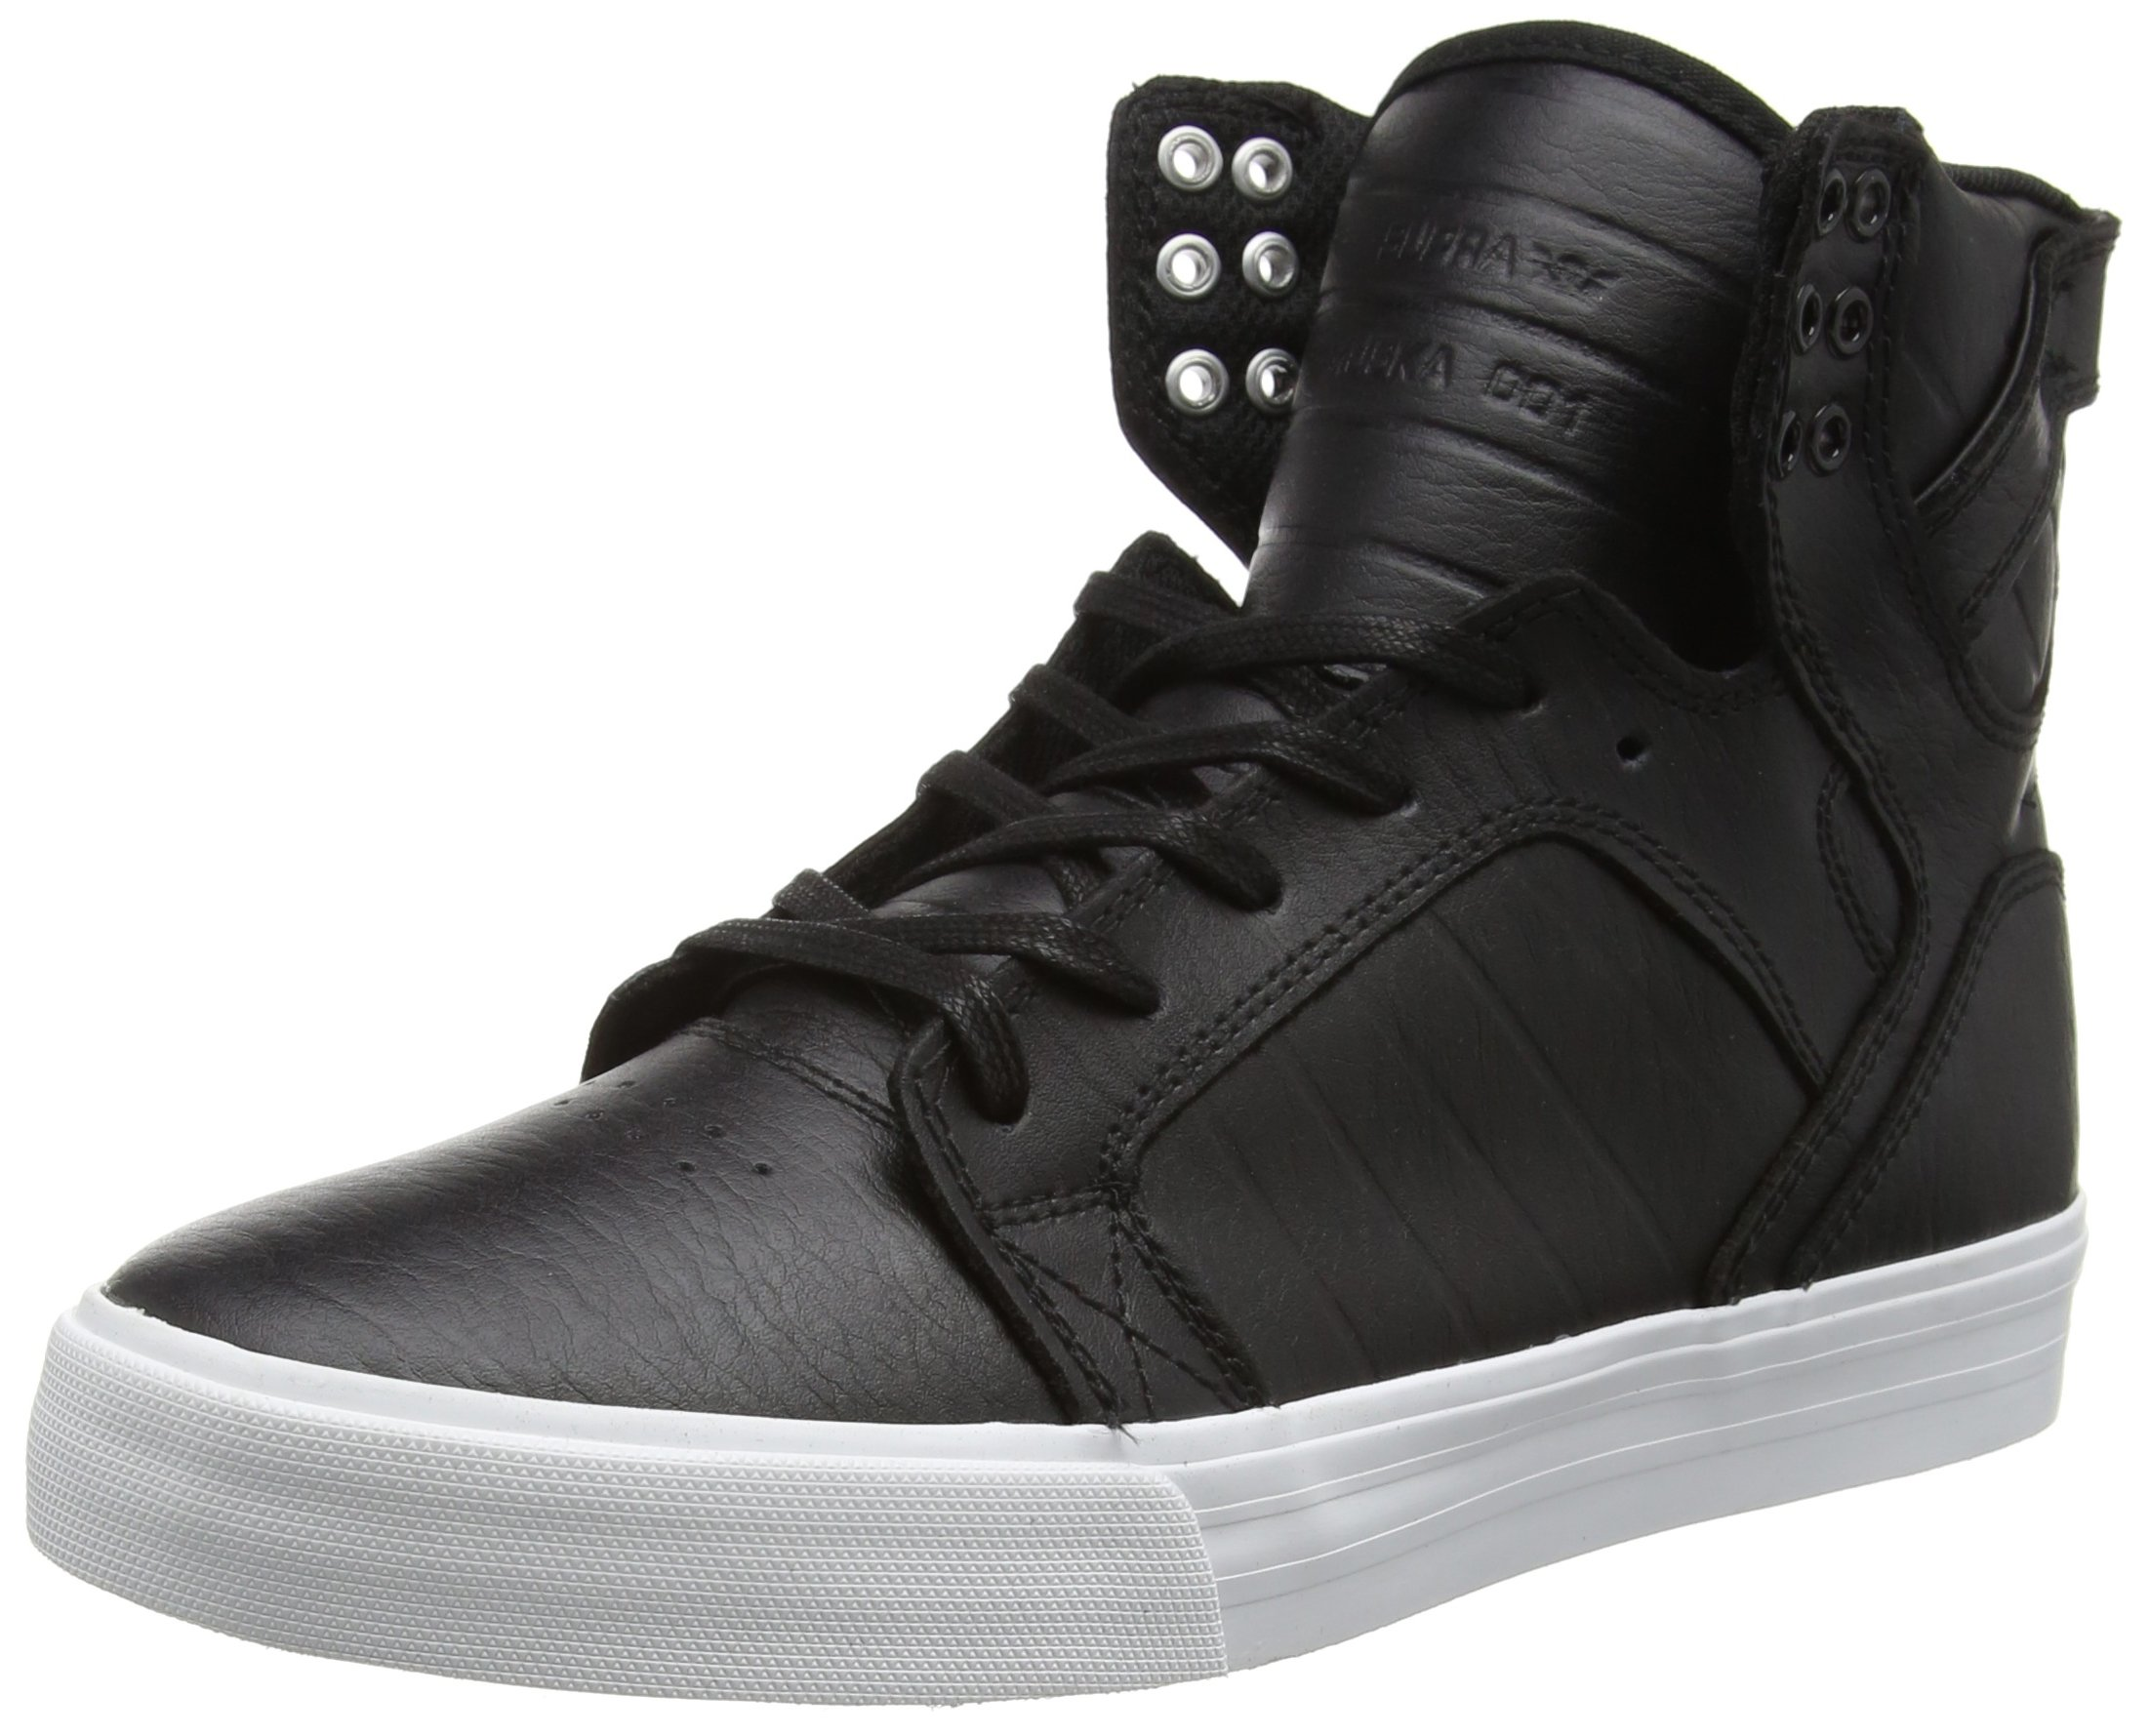 SUPRA Skytop Skate Shoe, Black/White, 15 Regular US